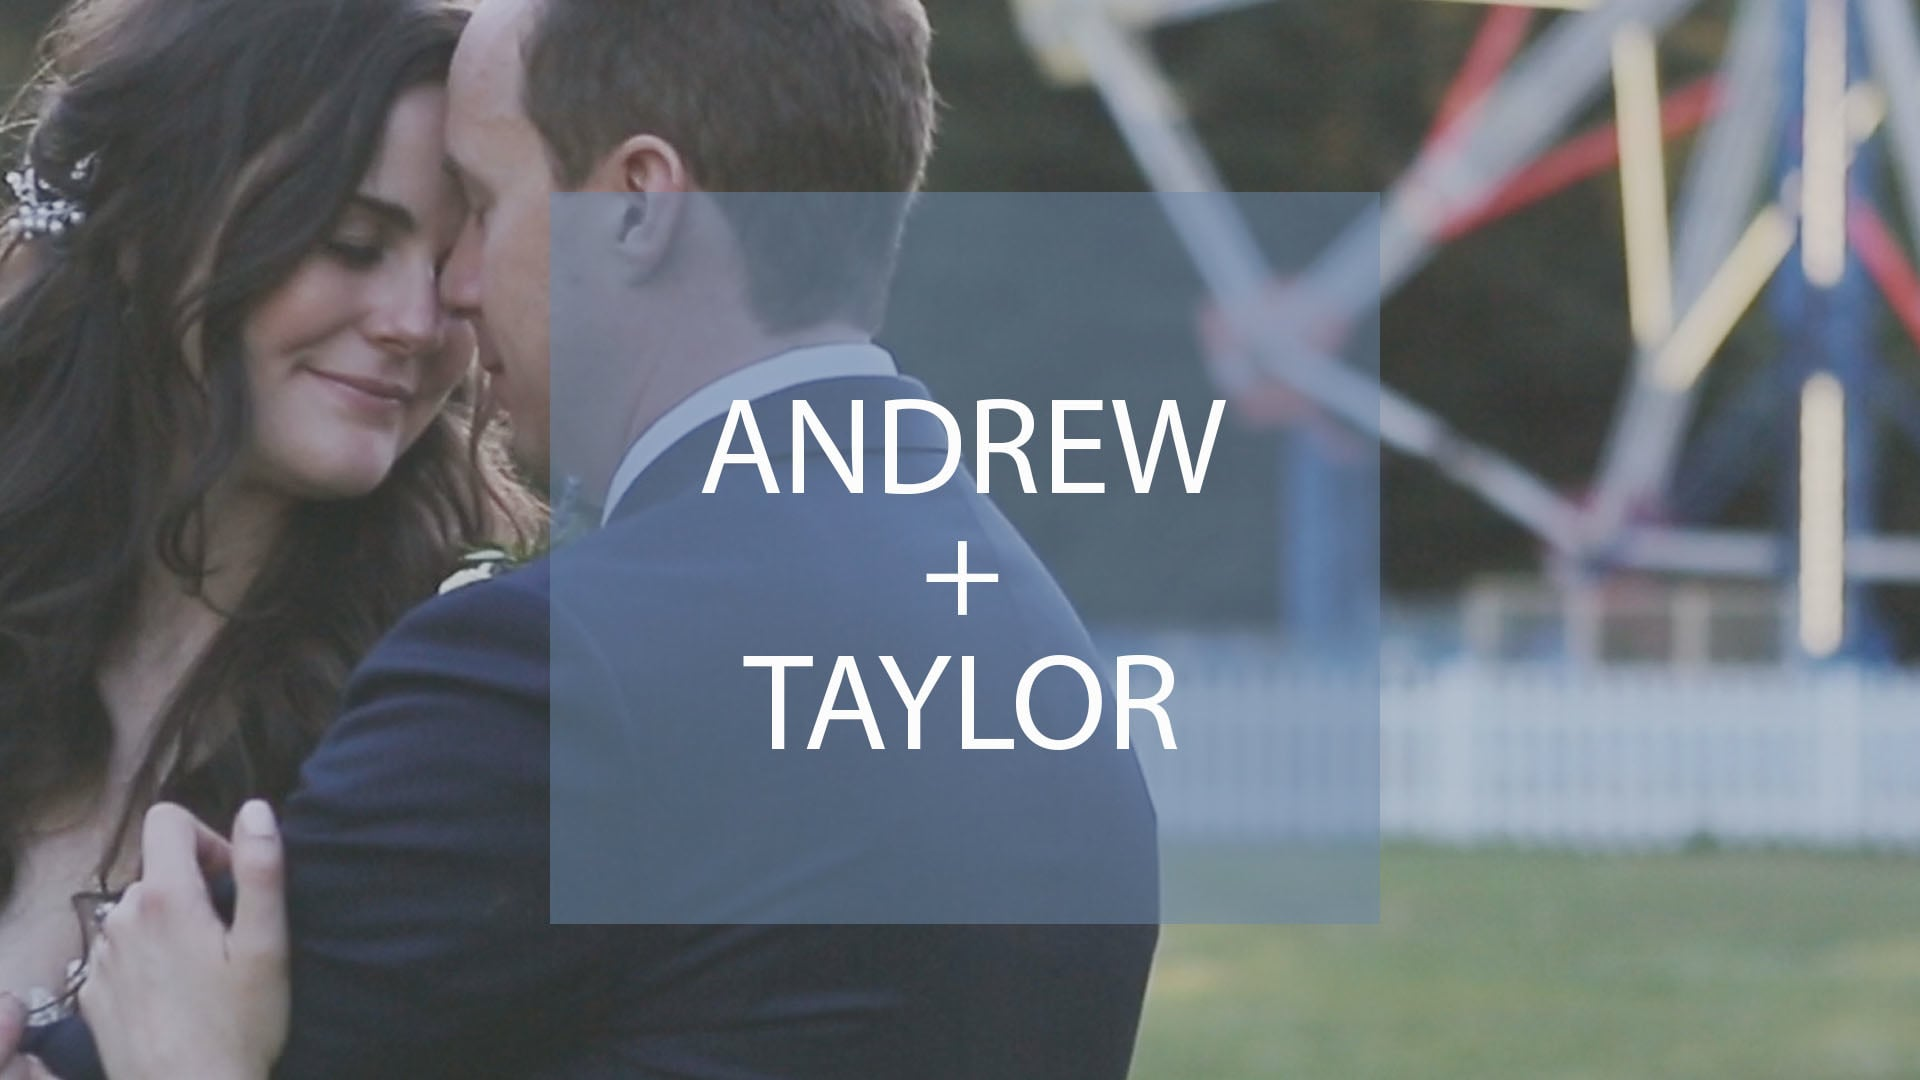 ANDREW + TAYLOR